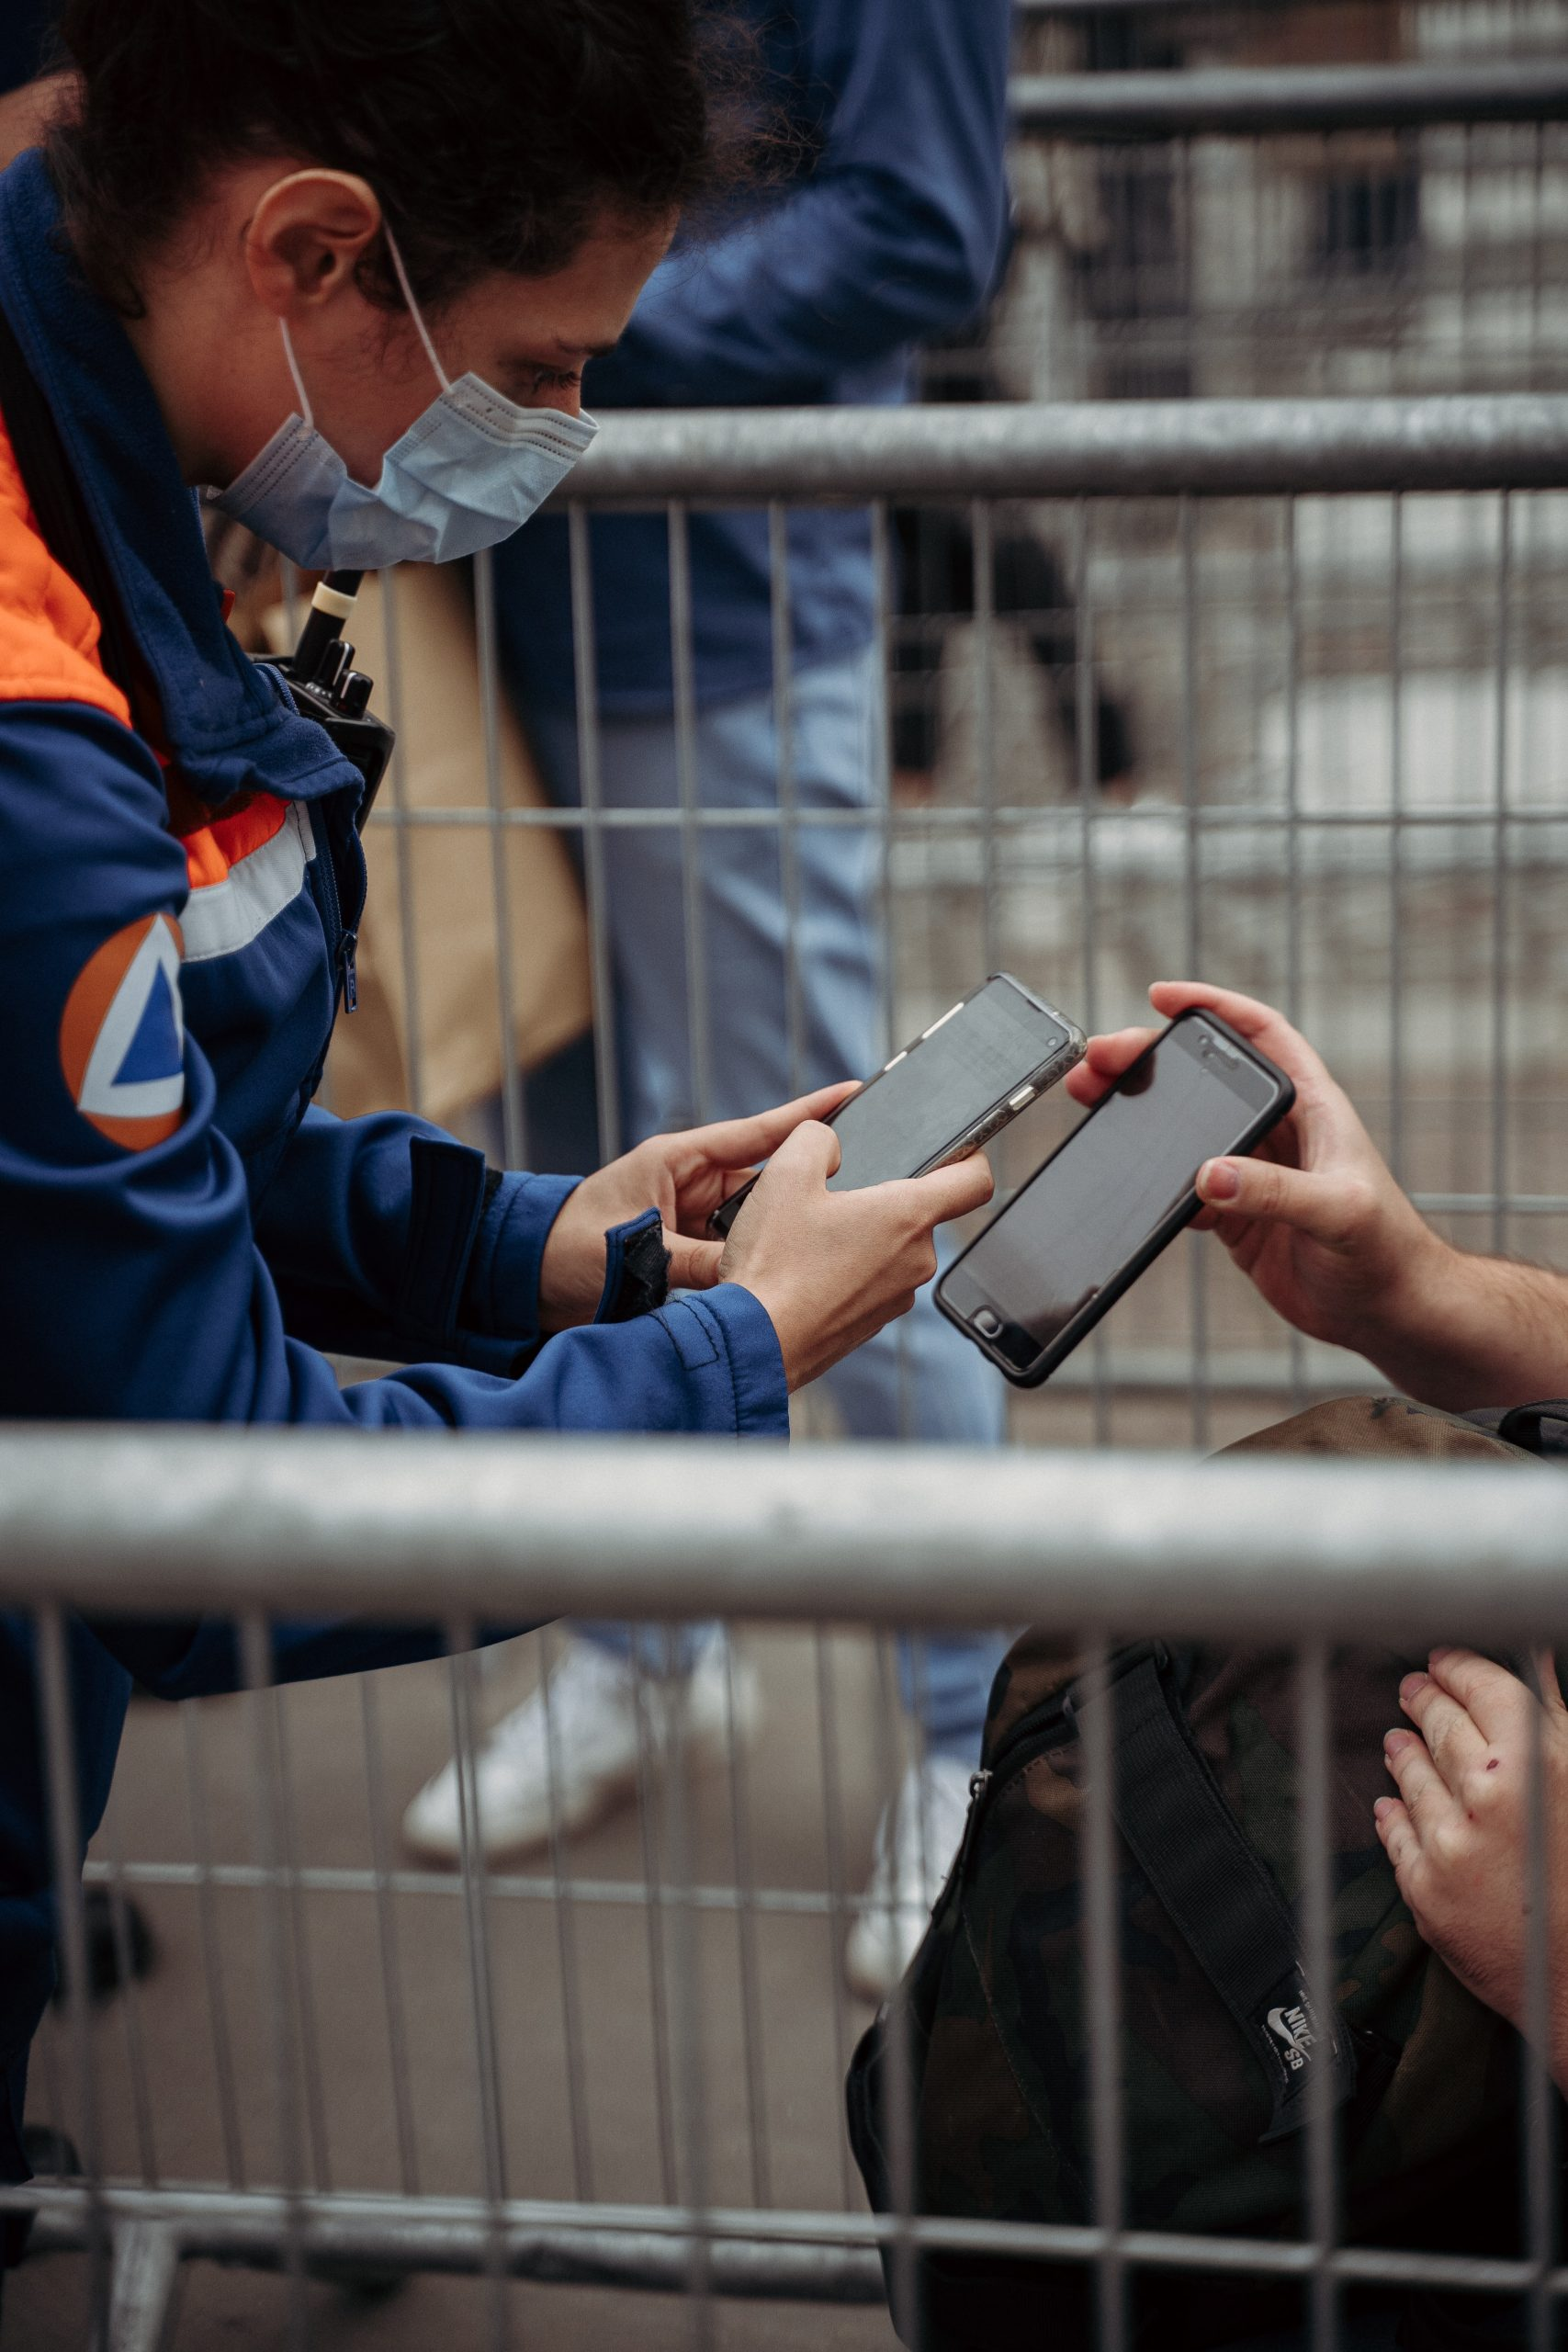 A person scans a cellphone screen offered by another.